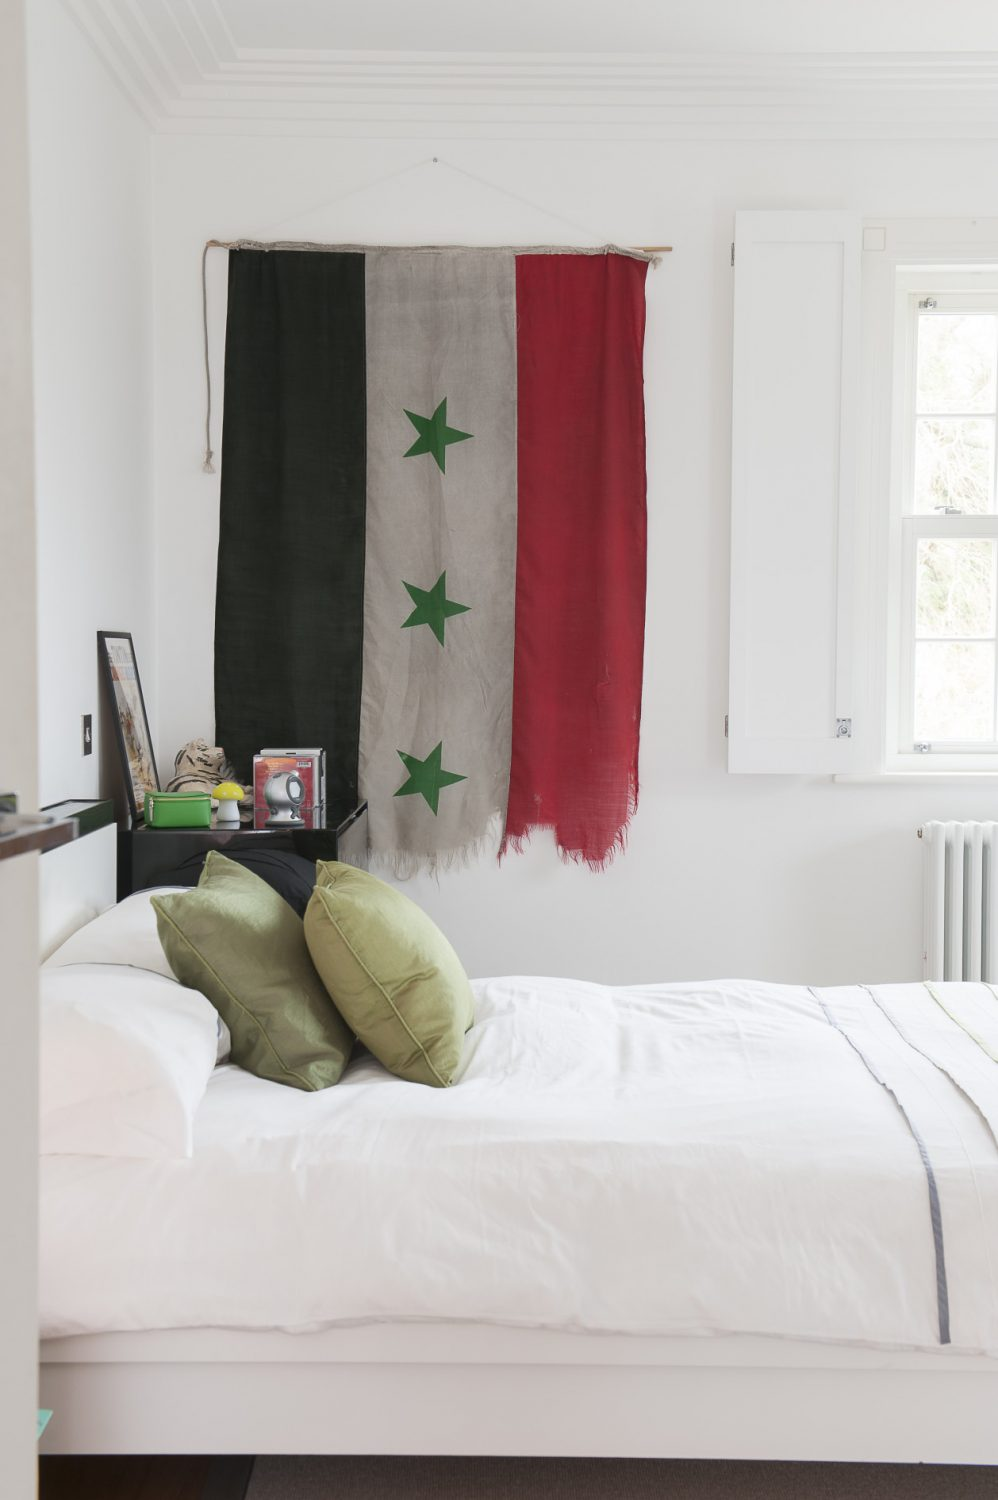 The couple's three boys are also avid collectors of exotic artefacts, including this original Iraqi flag – on display in one of the boy's bedrooms